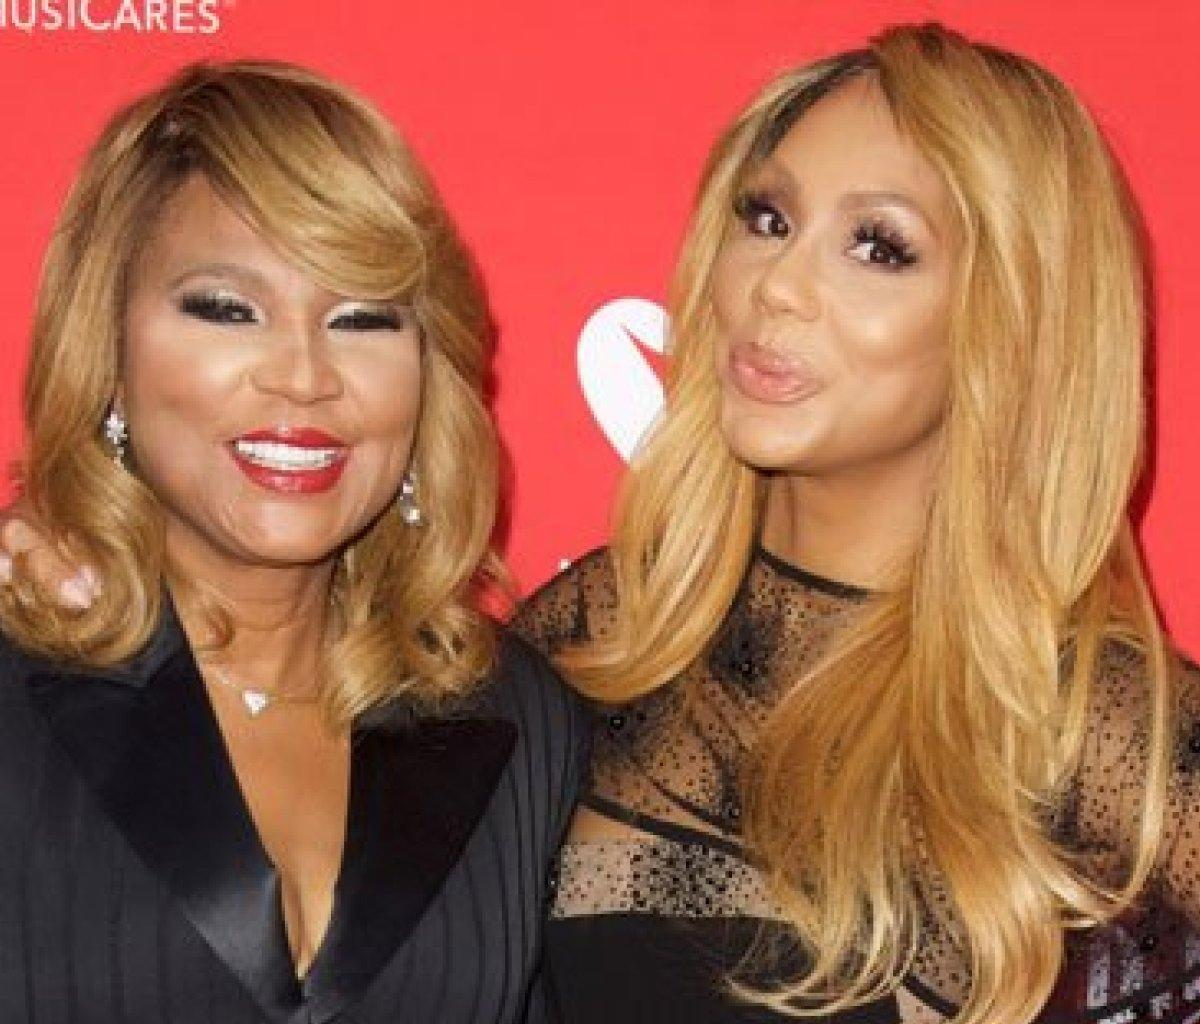 Tamar Braxton Gushes Over Trina And Evelyn Braxton - See The Funny Video